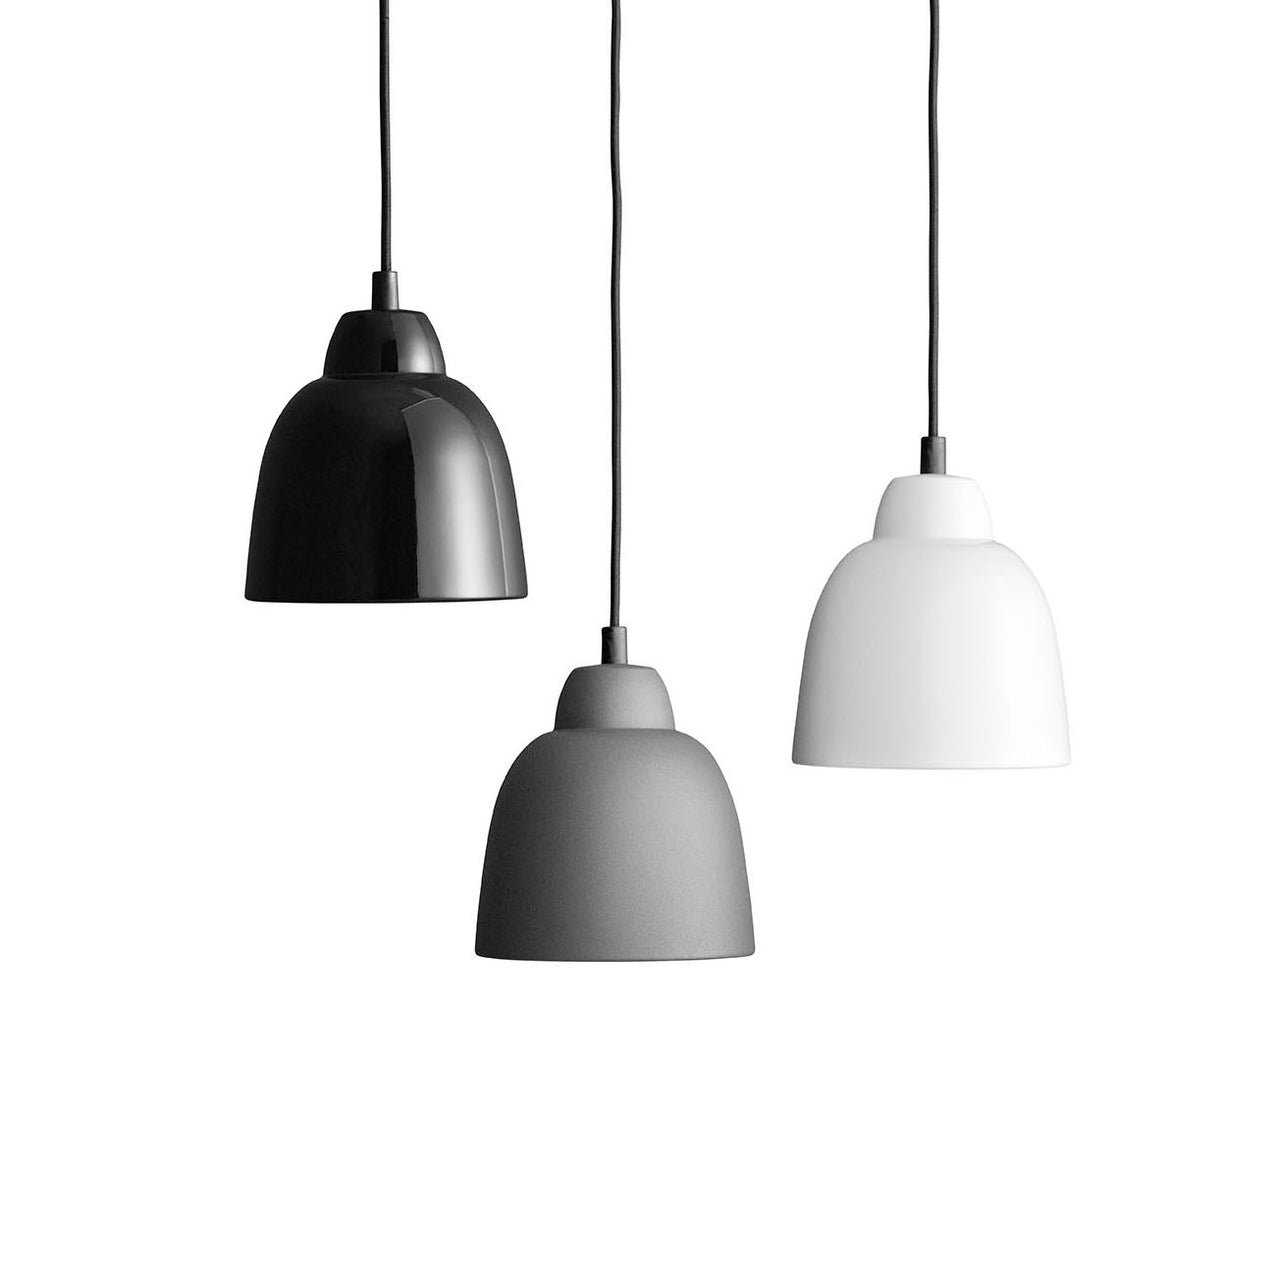 Tulip Pendant Lamp: Shiny Black + Anthracite Grey + White